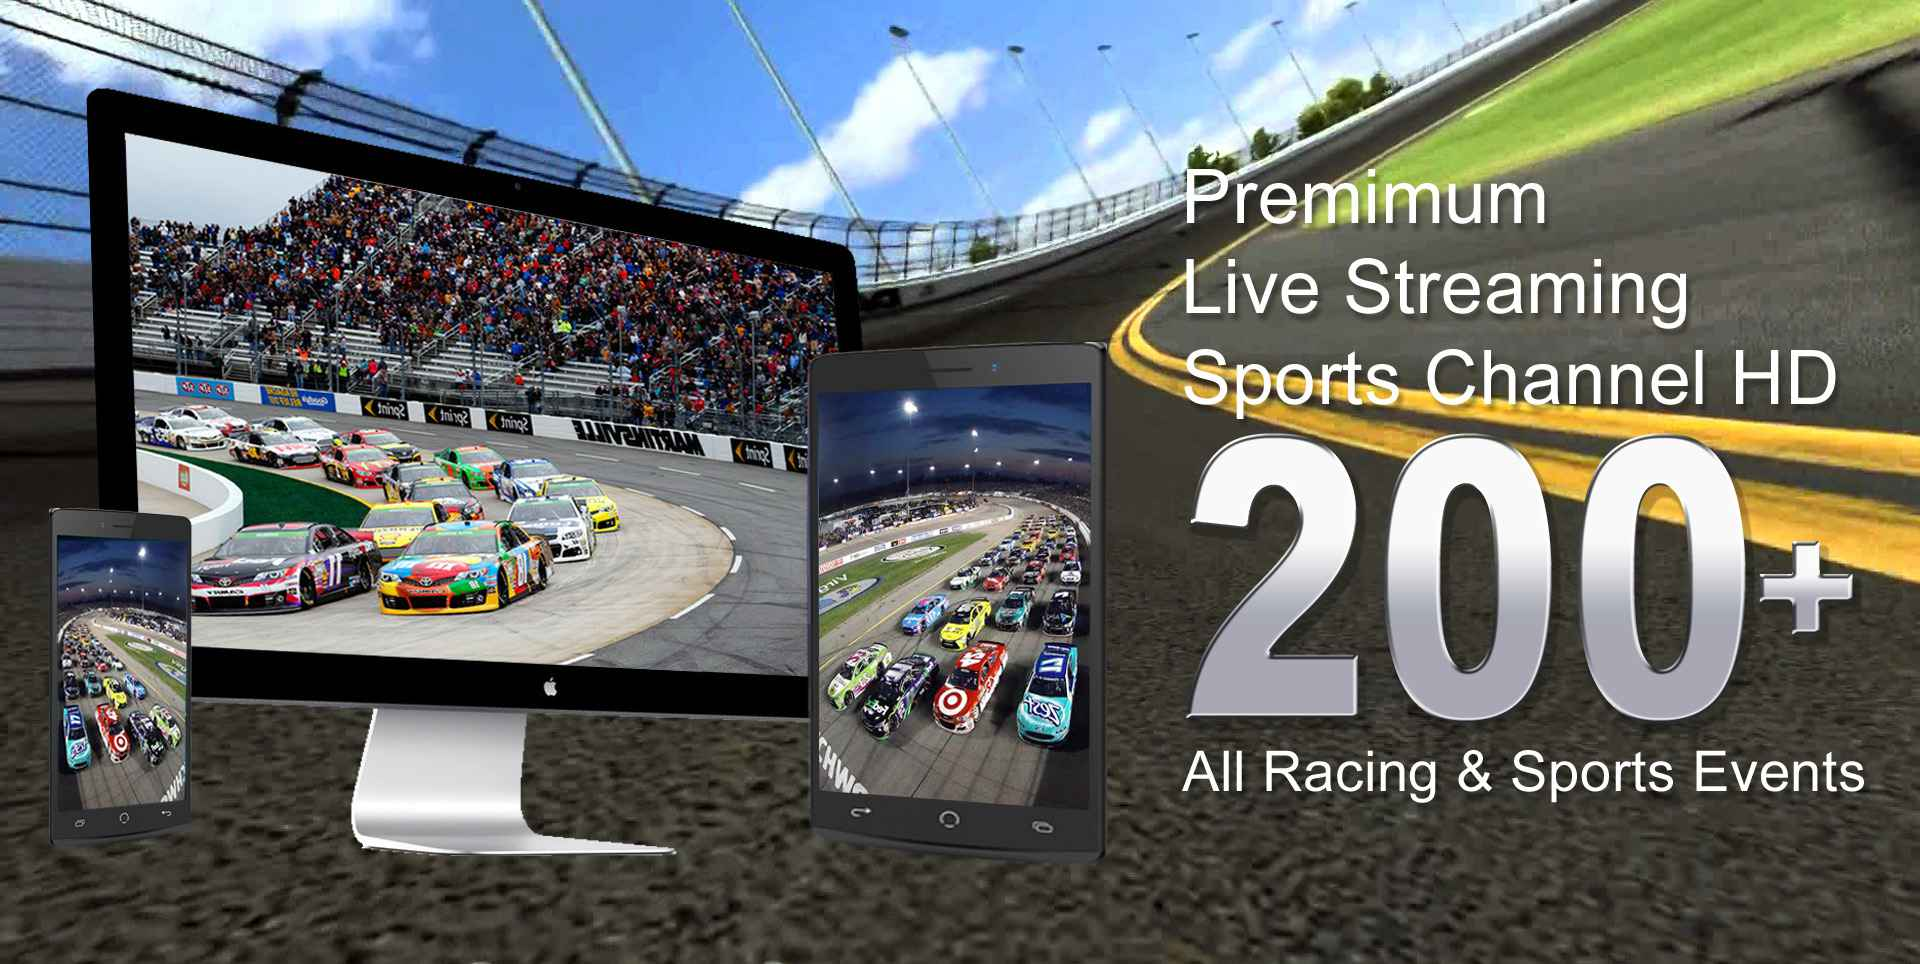 aaa-400-drive-for-autism-live-at-dover-international-speedway